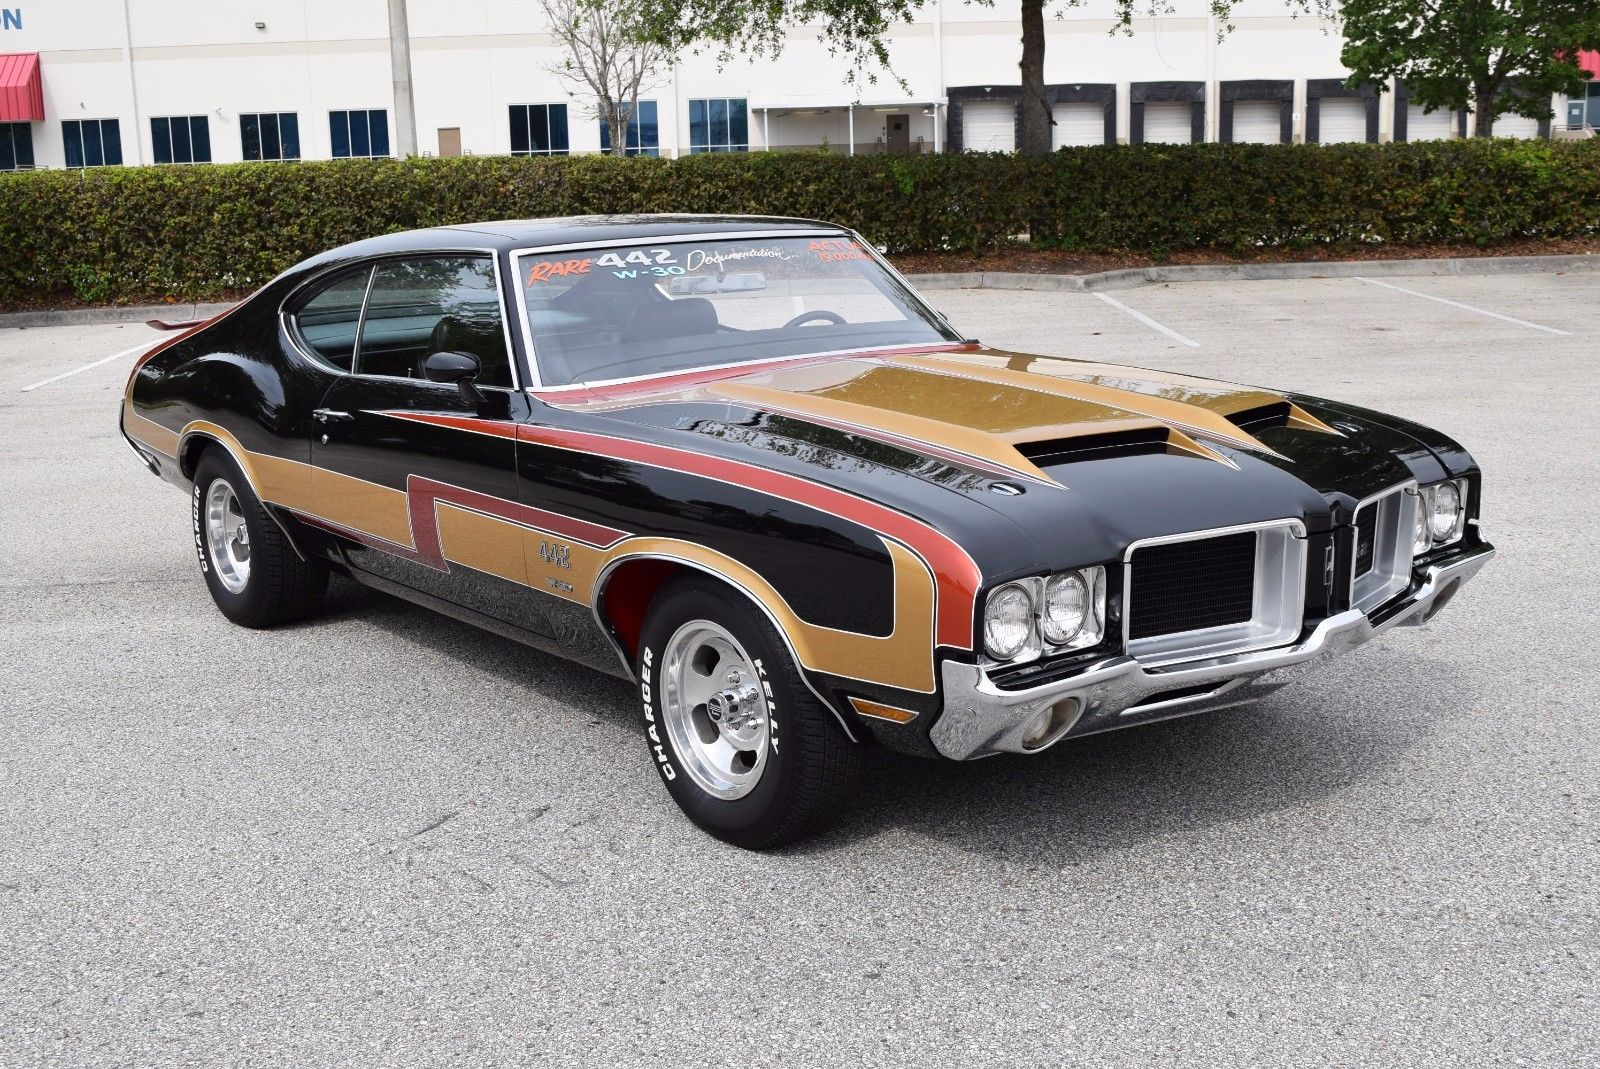 This 1971 Olds 442 With 1979 Paint And Slot Mags Is Pretty Sweet – Best of Both Worlds?